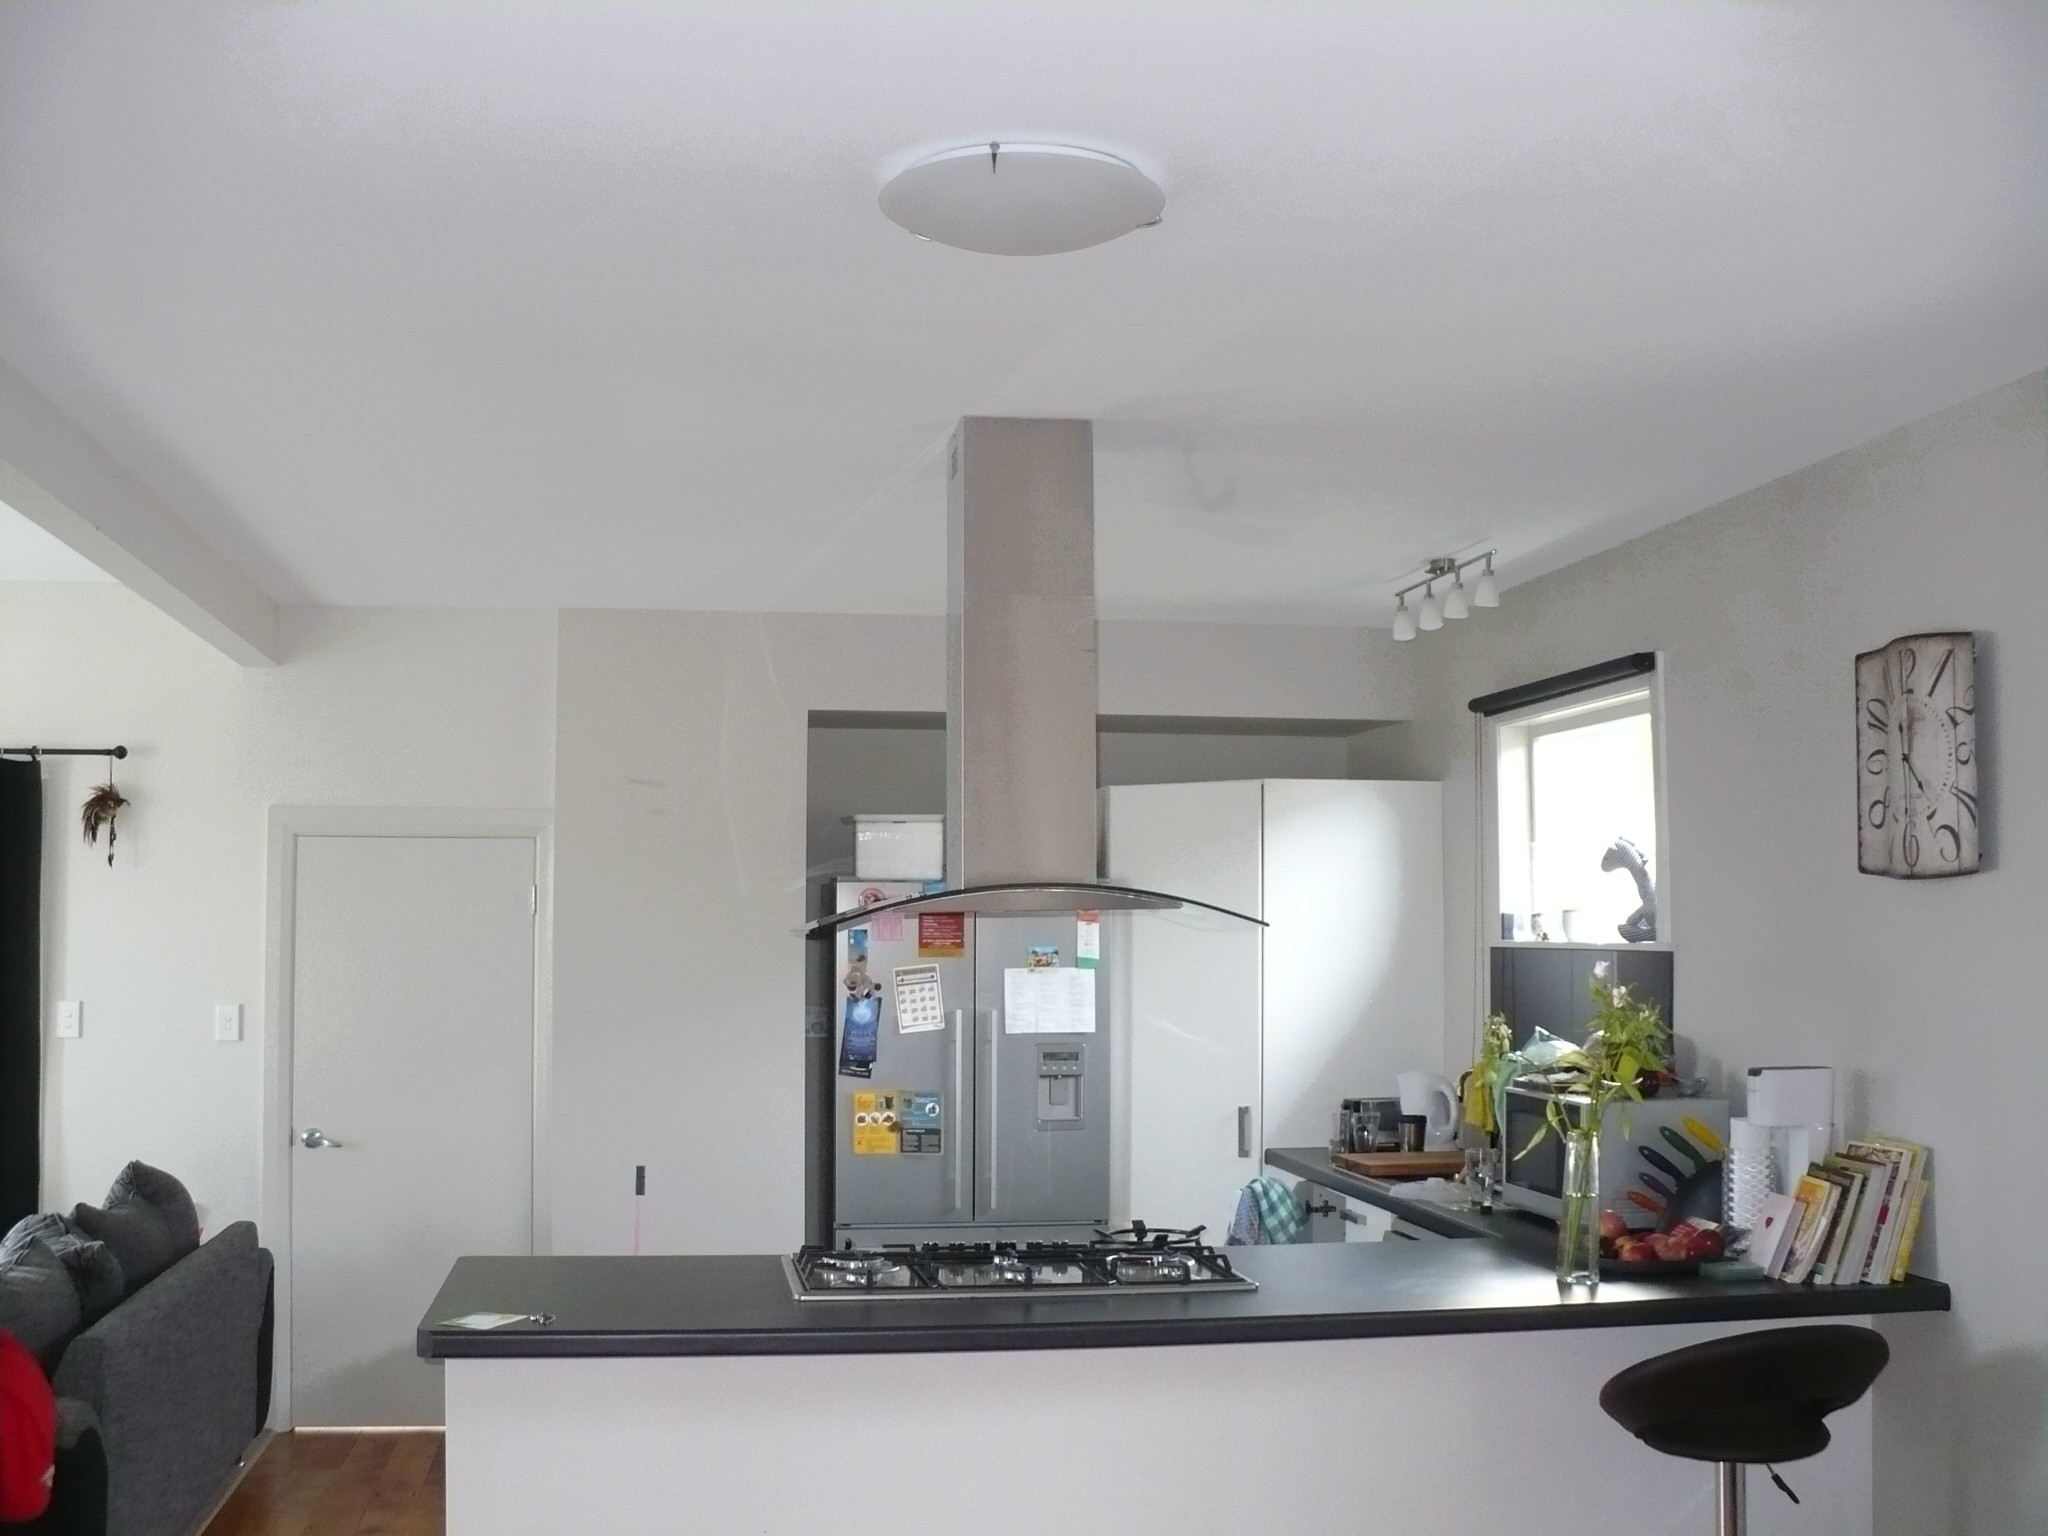 ductless steel range hood chimney ceiling ventilation your metal stainless set hoods kitchen lowes exhaust fan with zephyr vent st mounted under broan stove ceilings inch up cabinet